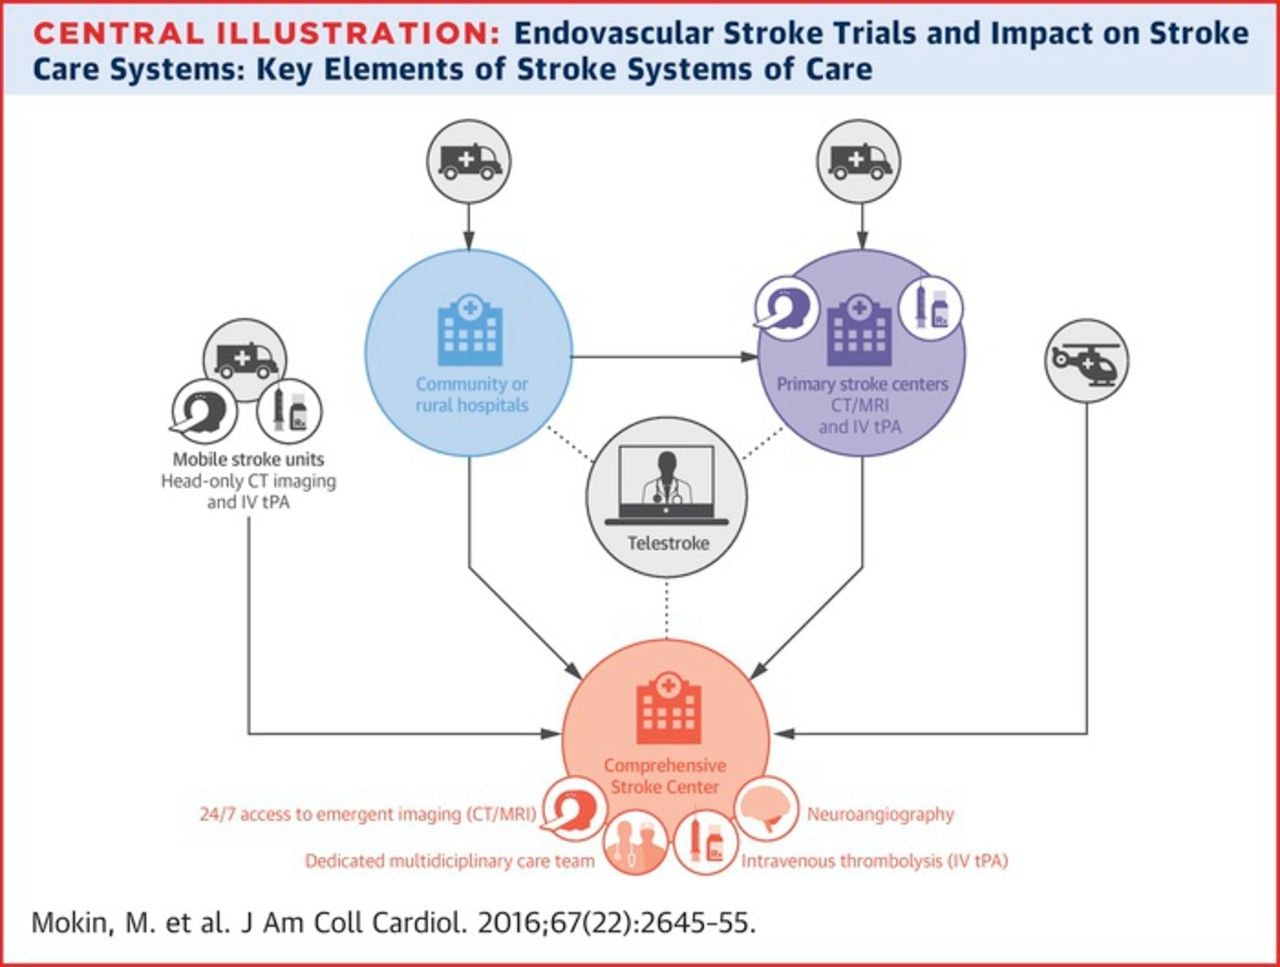 Recent Endovascular Stroke Trials and Their Impact on Stroke Systems of  Care | JACC: Journal of the American College of Cardiology